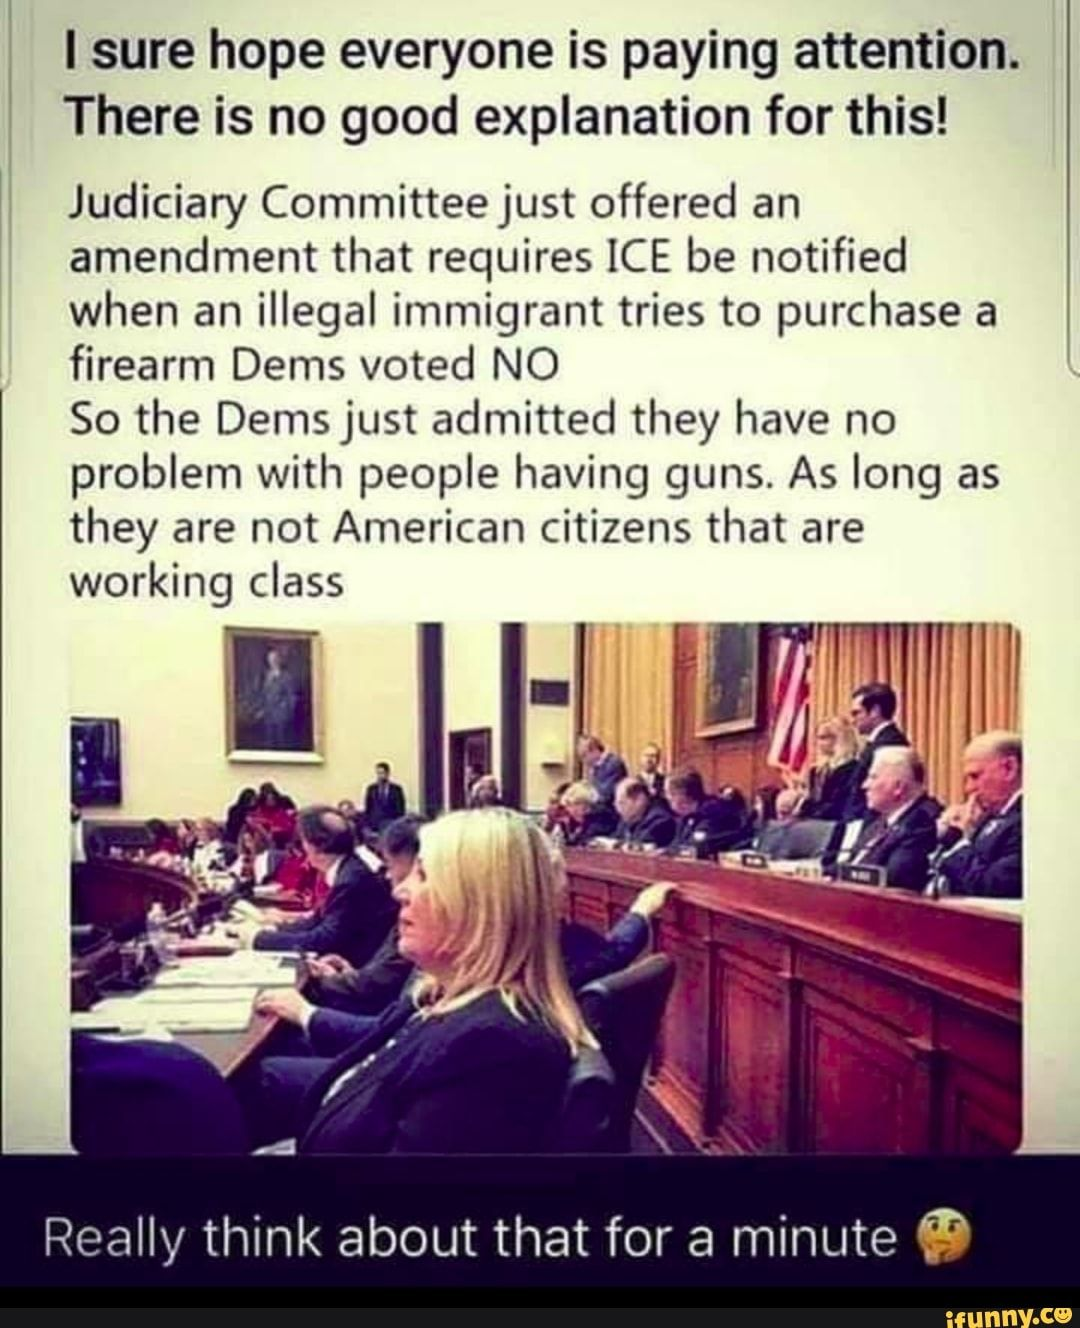 Picture memes UF6XiRp17: 1 comment — iFunny lsure hope everyone is paying attention. There is no good explanation for this! Judiciary Committee just offered an amendment that requires ICE be notified when an illegal immigrant tries to purchase a firearm Dems voted NO 50 the Demsjust admitted they have no problem with people havin...